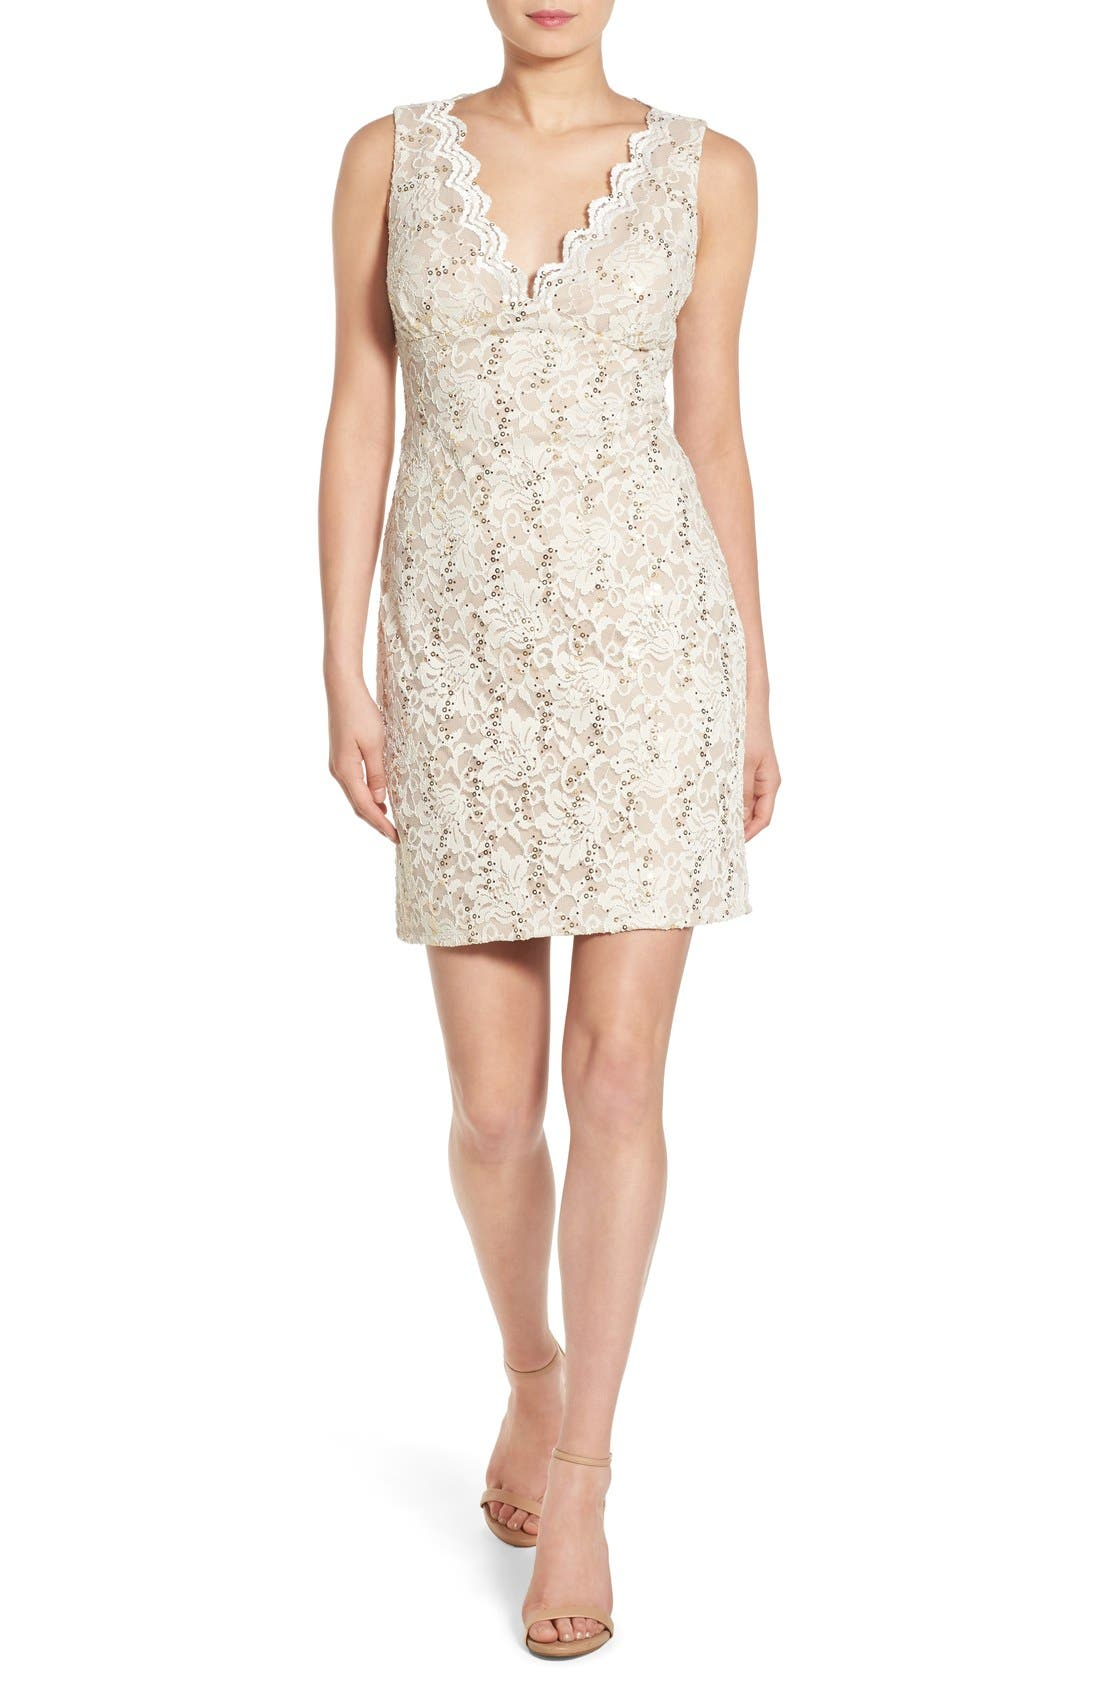 Alternate Image 1 Selected - Morgan & Co. Open Back Lace Dress